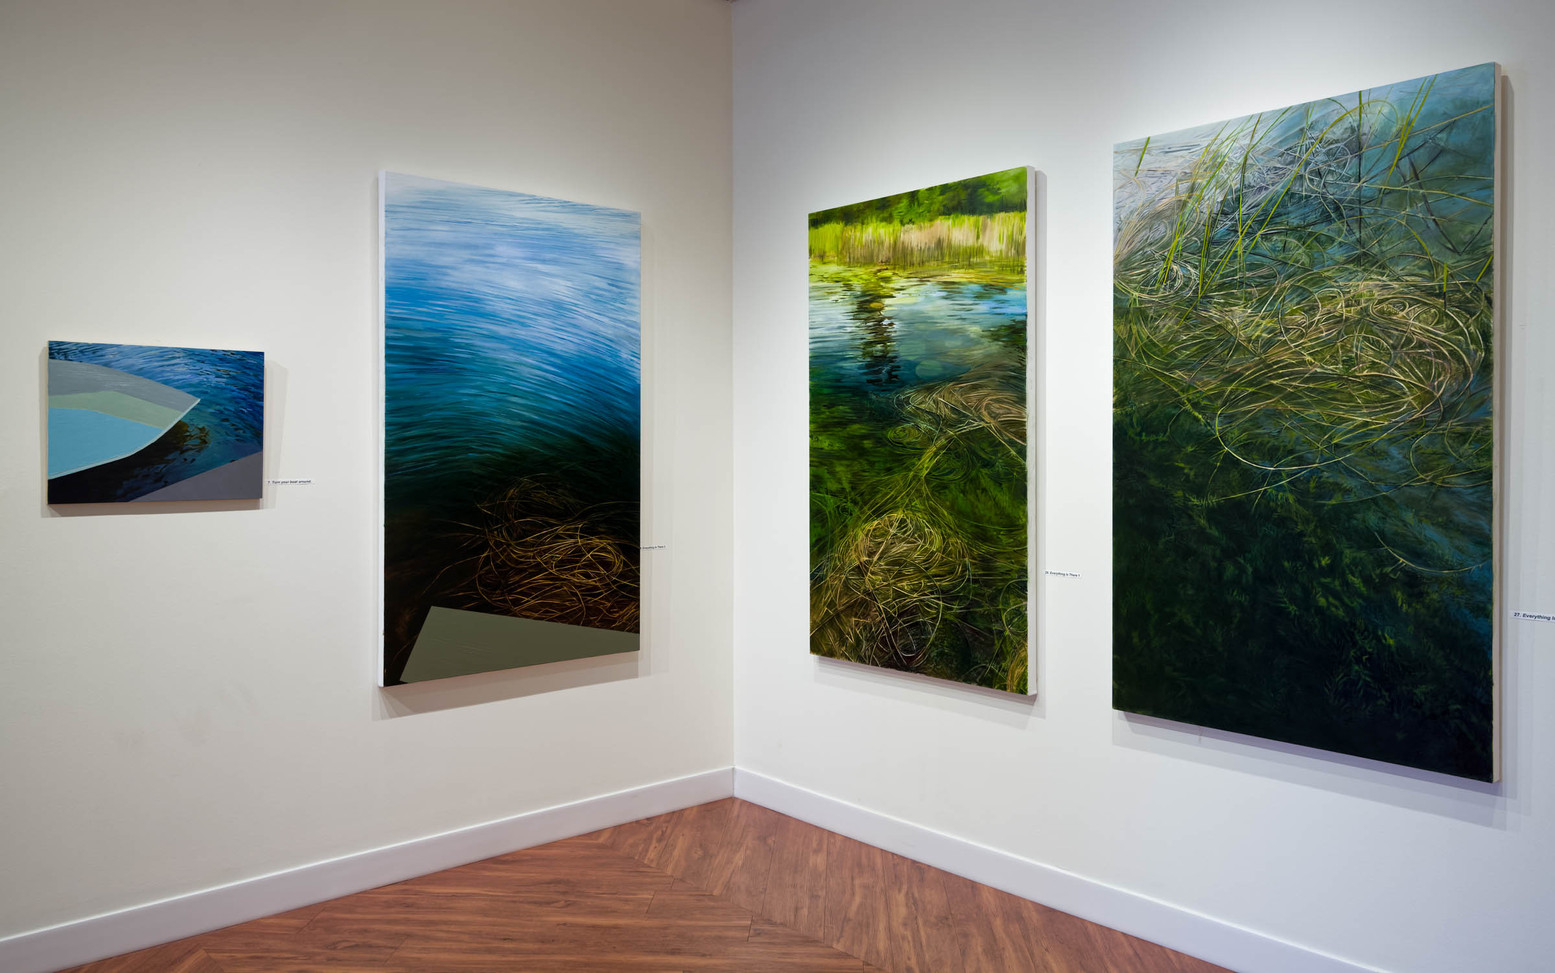 Solo show Pennswood Art Gallery 2020